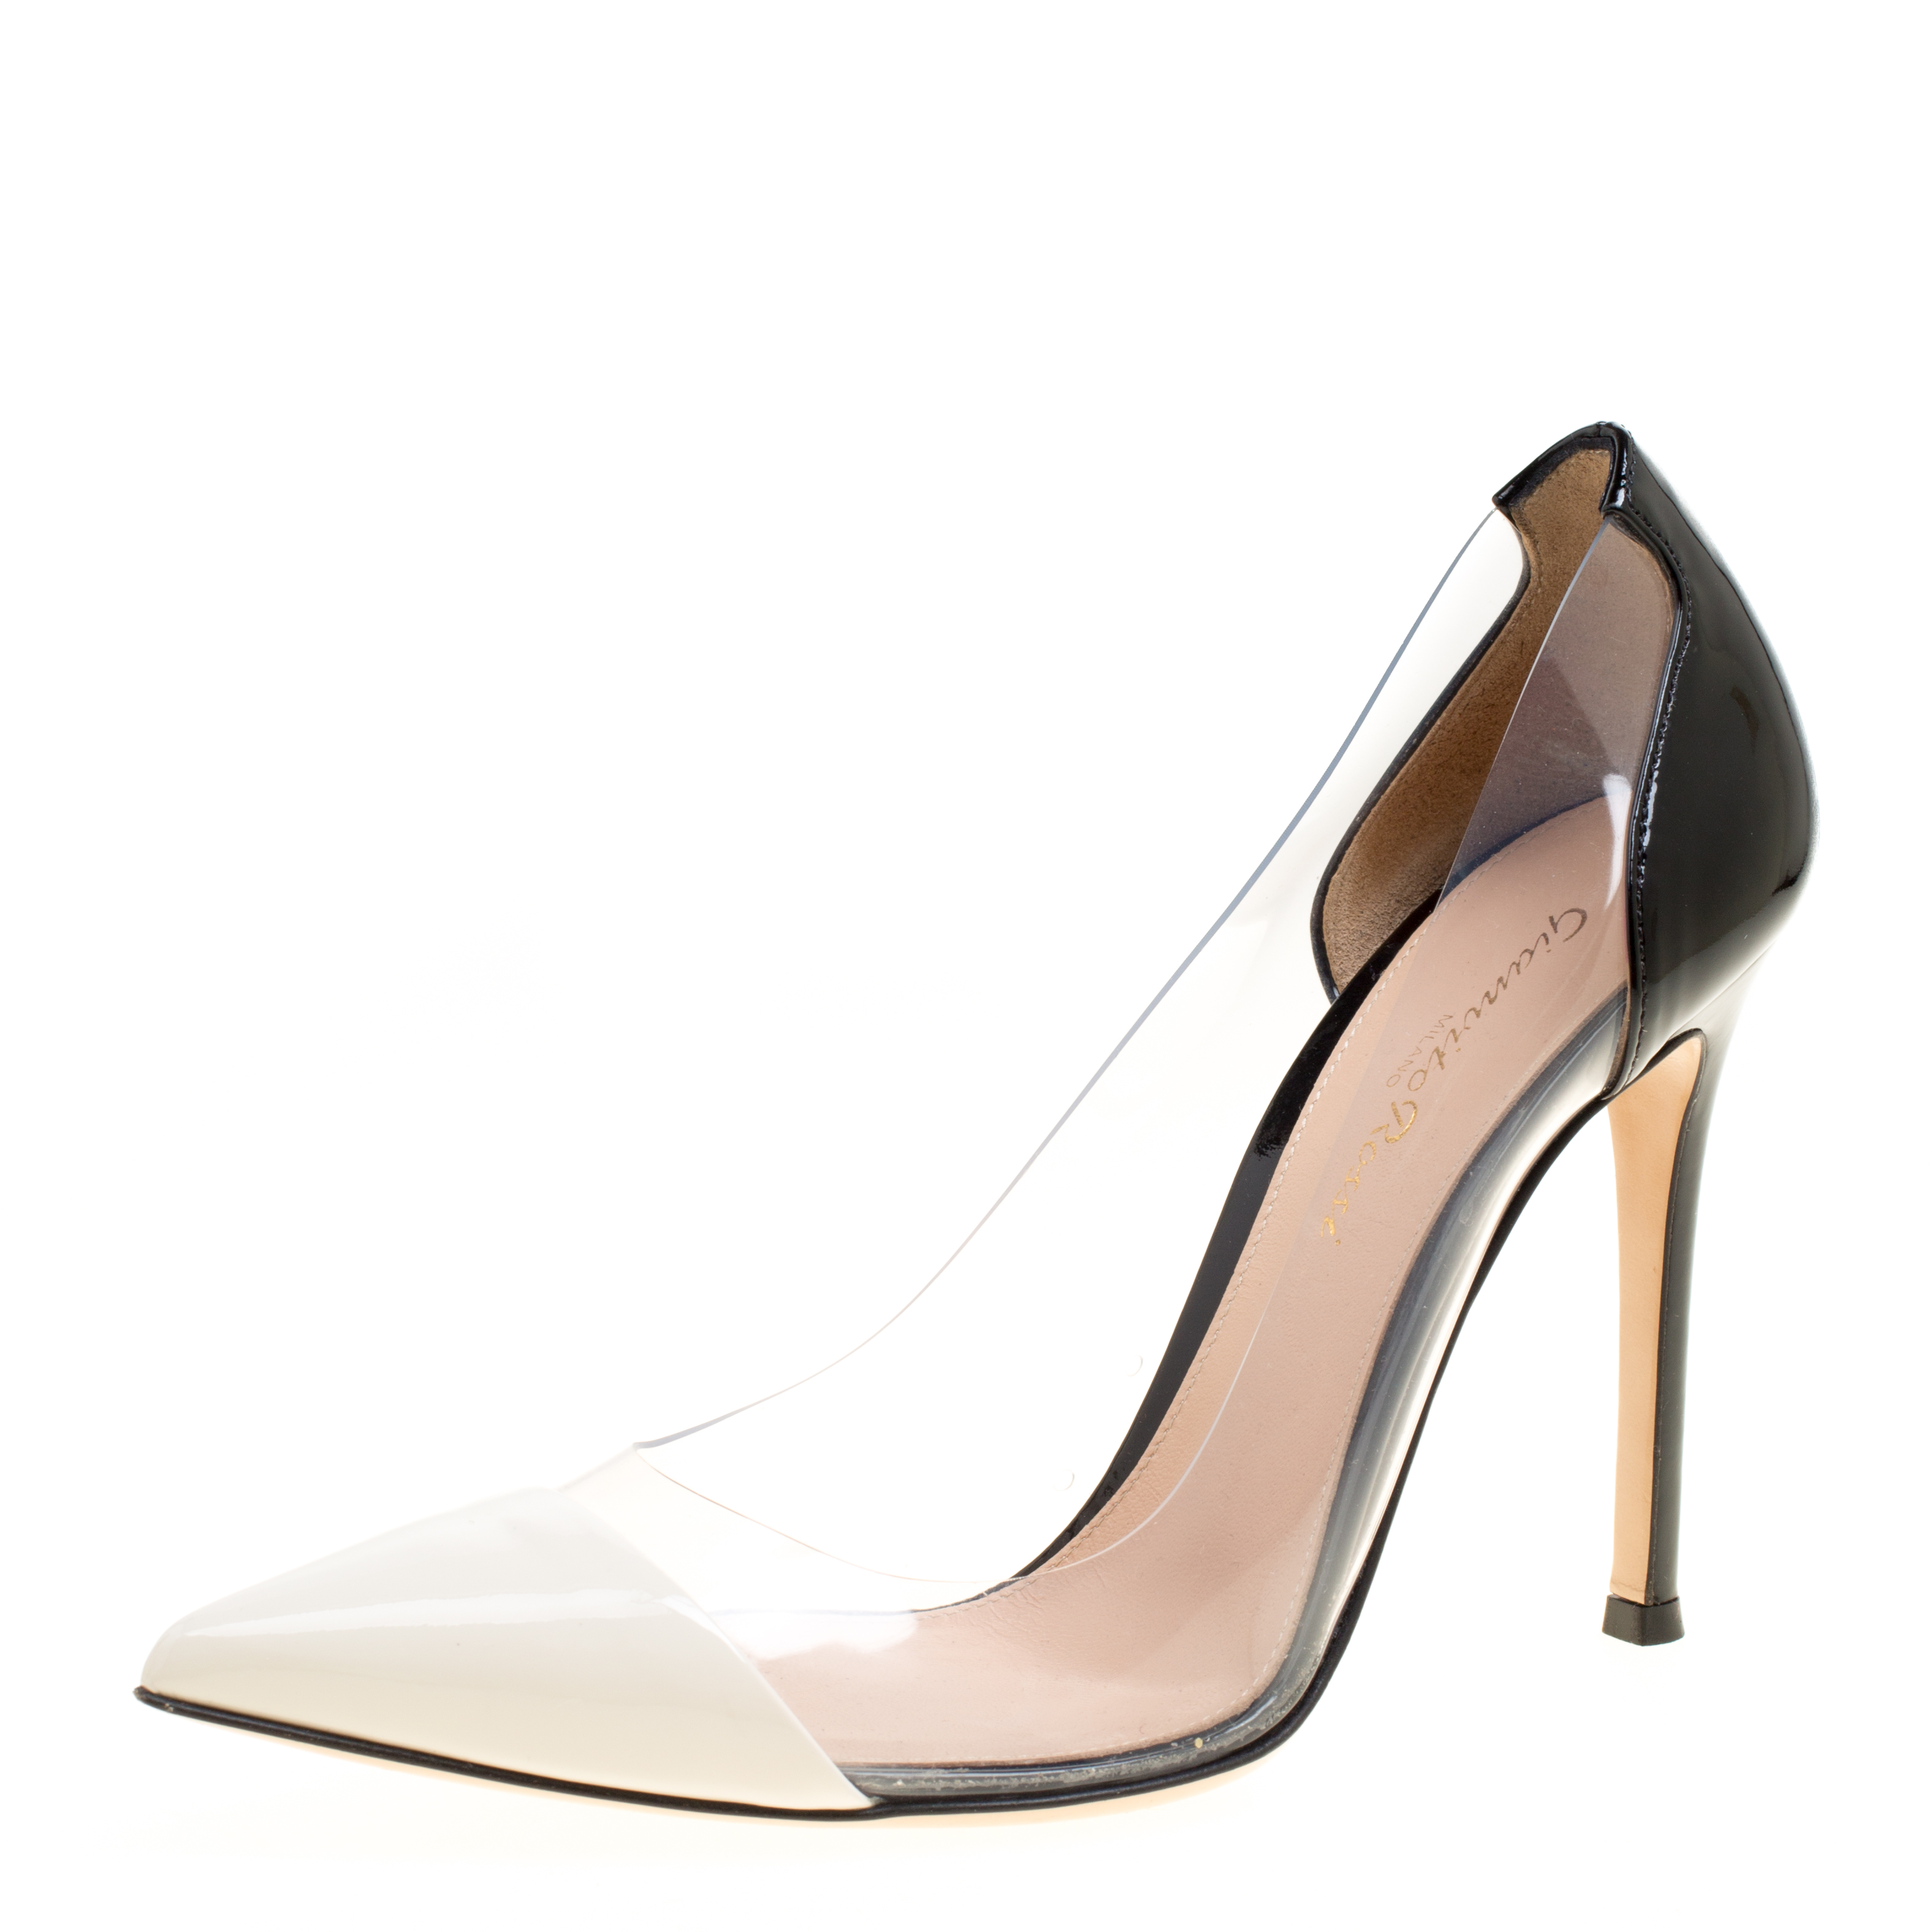 d07d7d4d66 Buy Gianvito Rossi White/Black Patent Leather and PVC Plexi Pointed ...